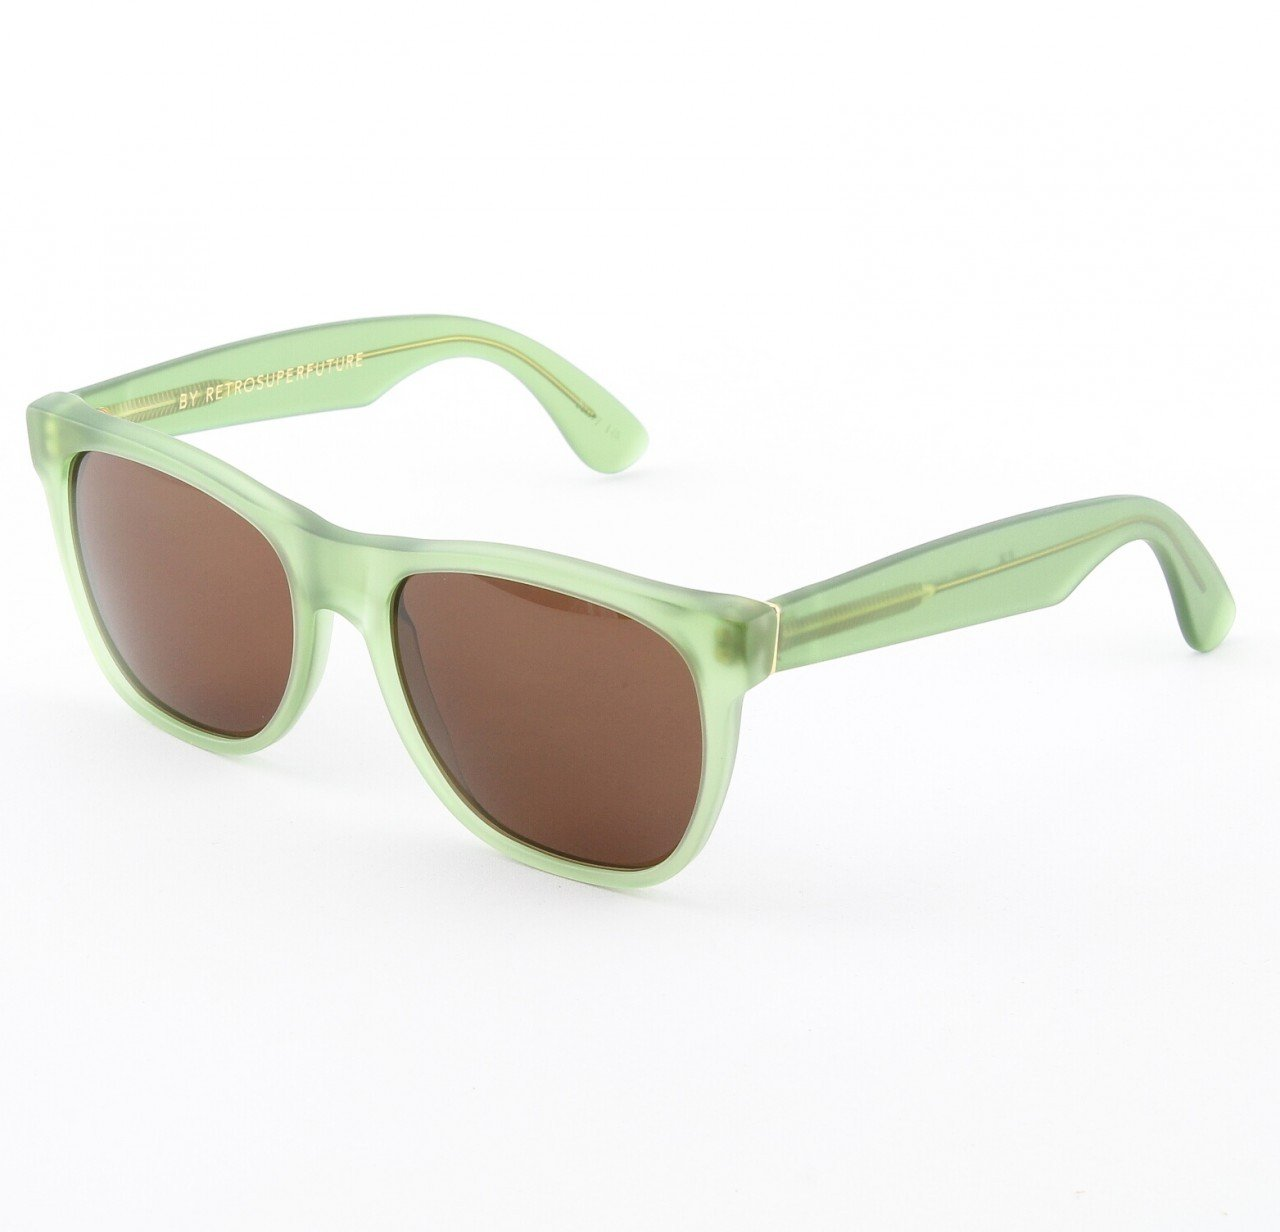 Super Classic 497/3T Sunglasses Green with Brown Zeiss Lenses by RETROSUPERFUTURE